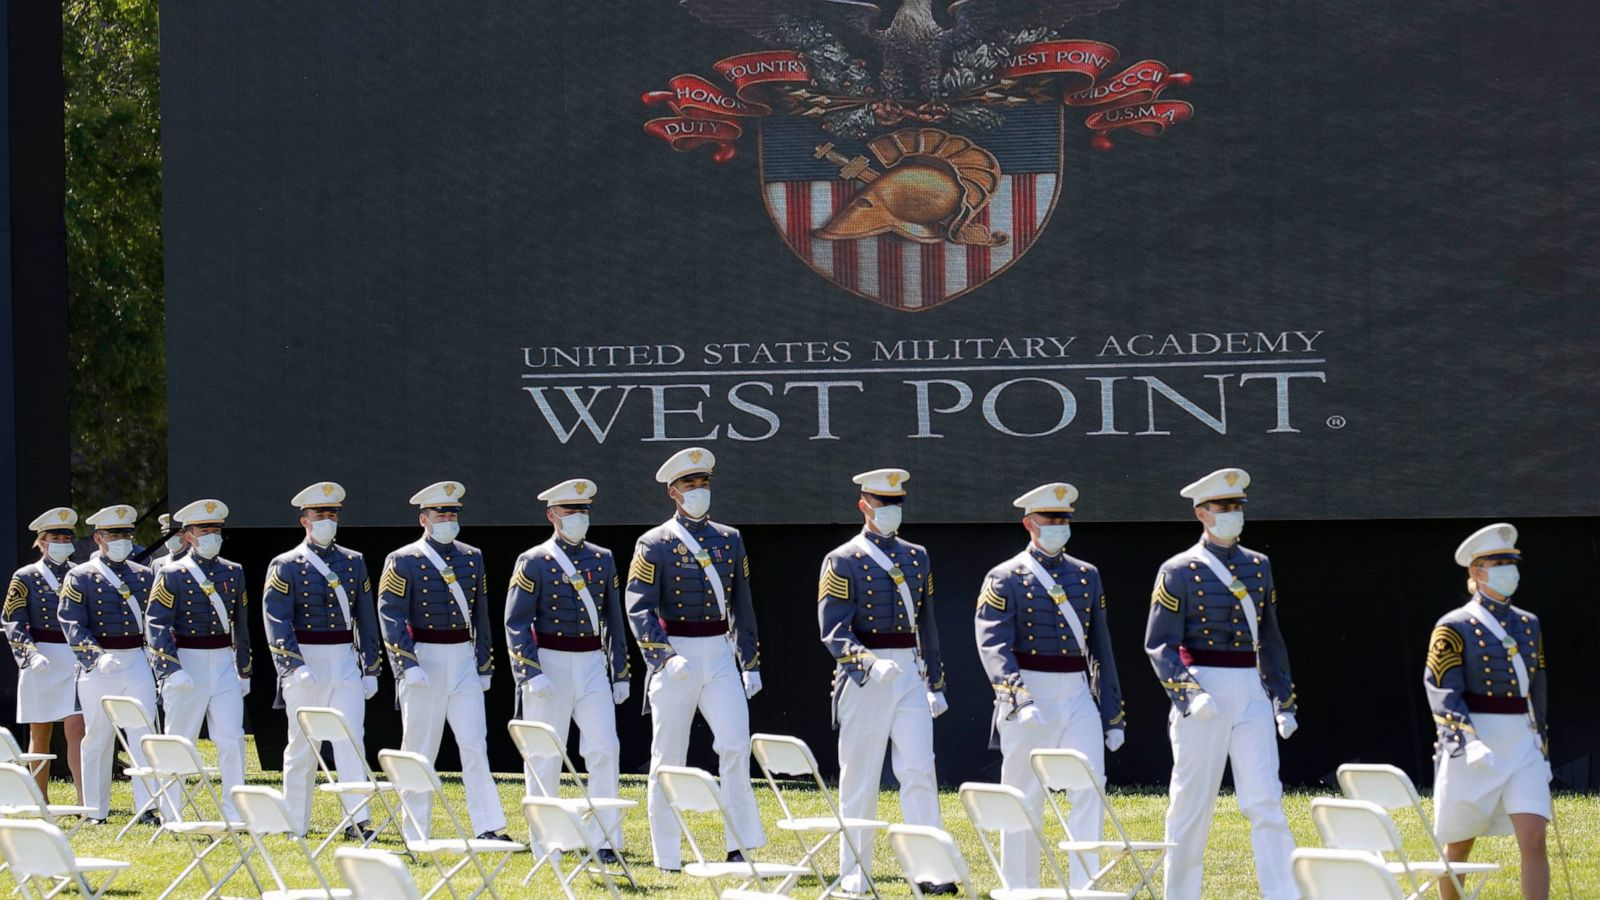 Eight West Point Cadets Expelled for Cheating